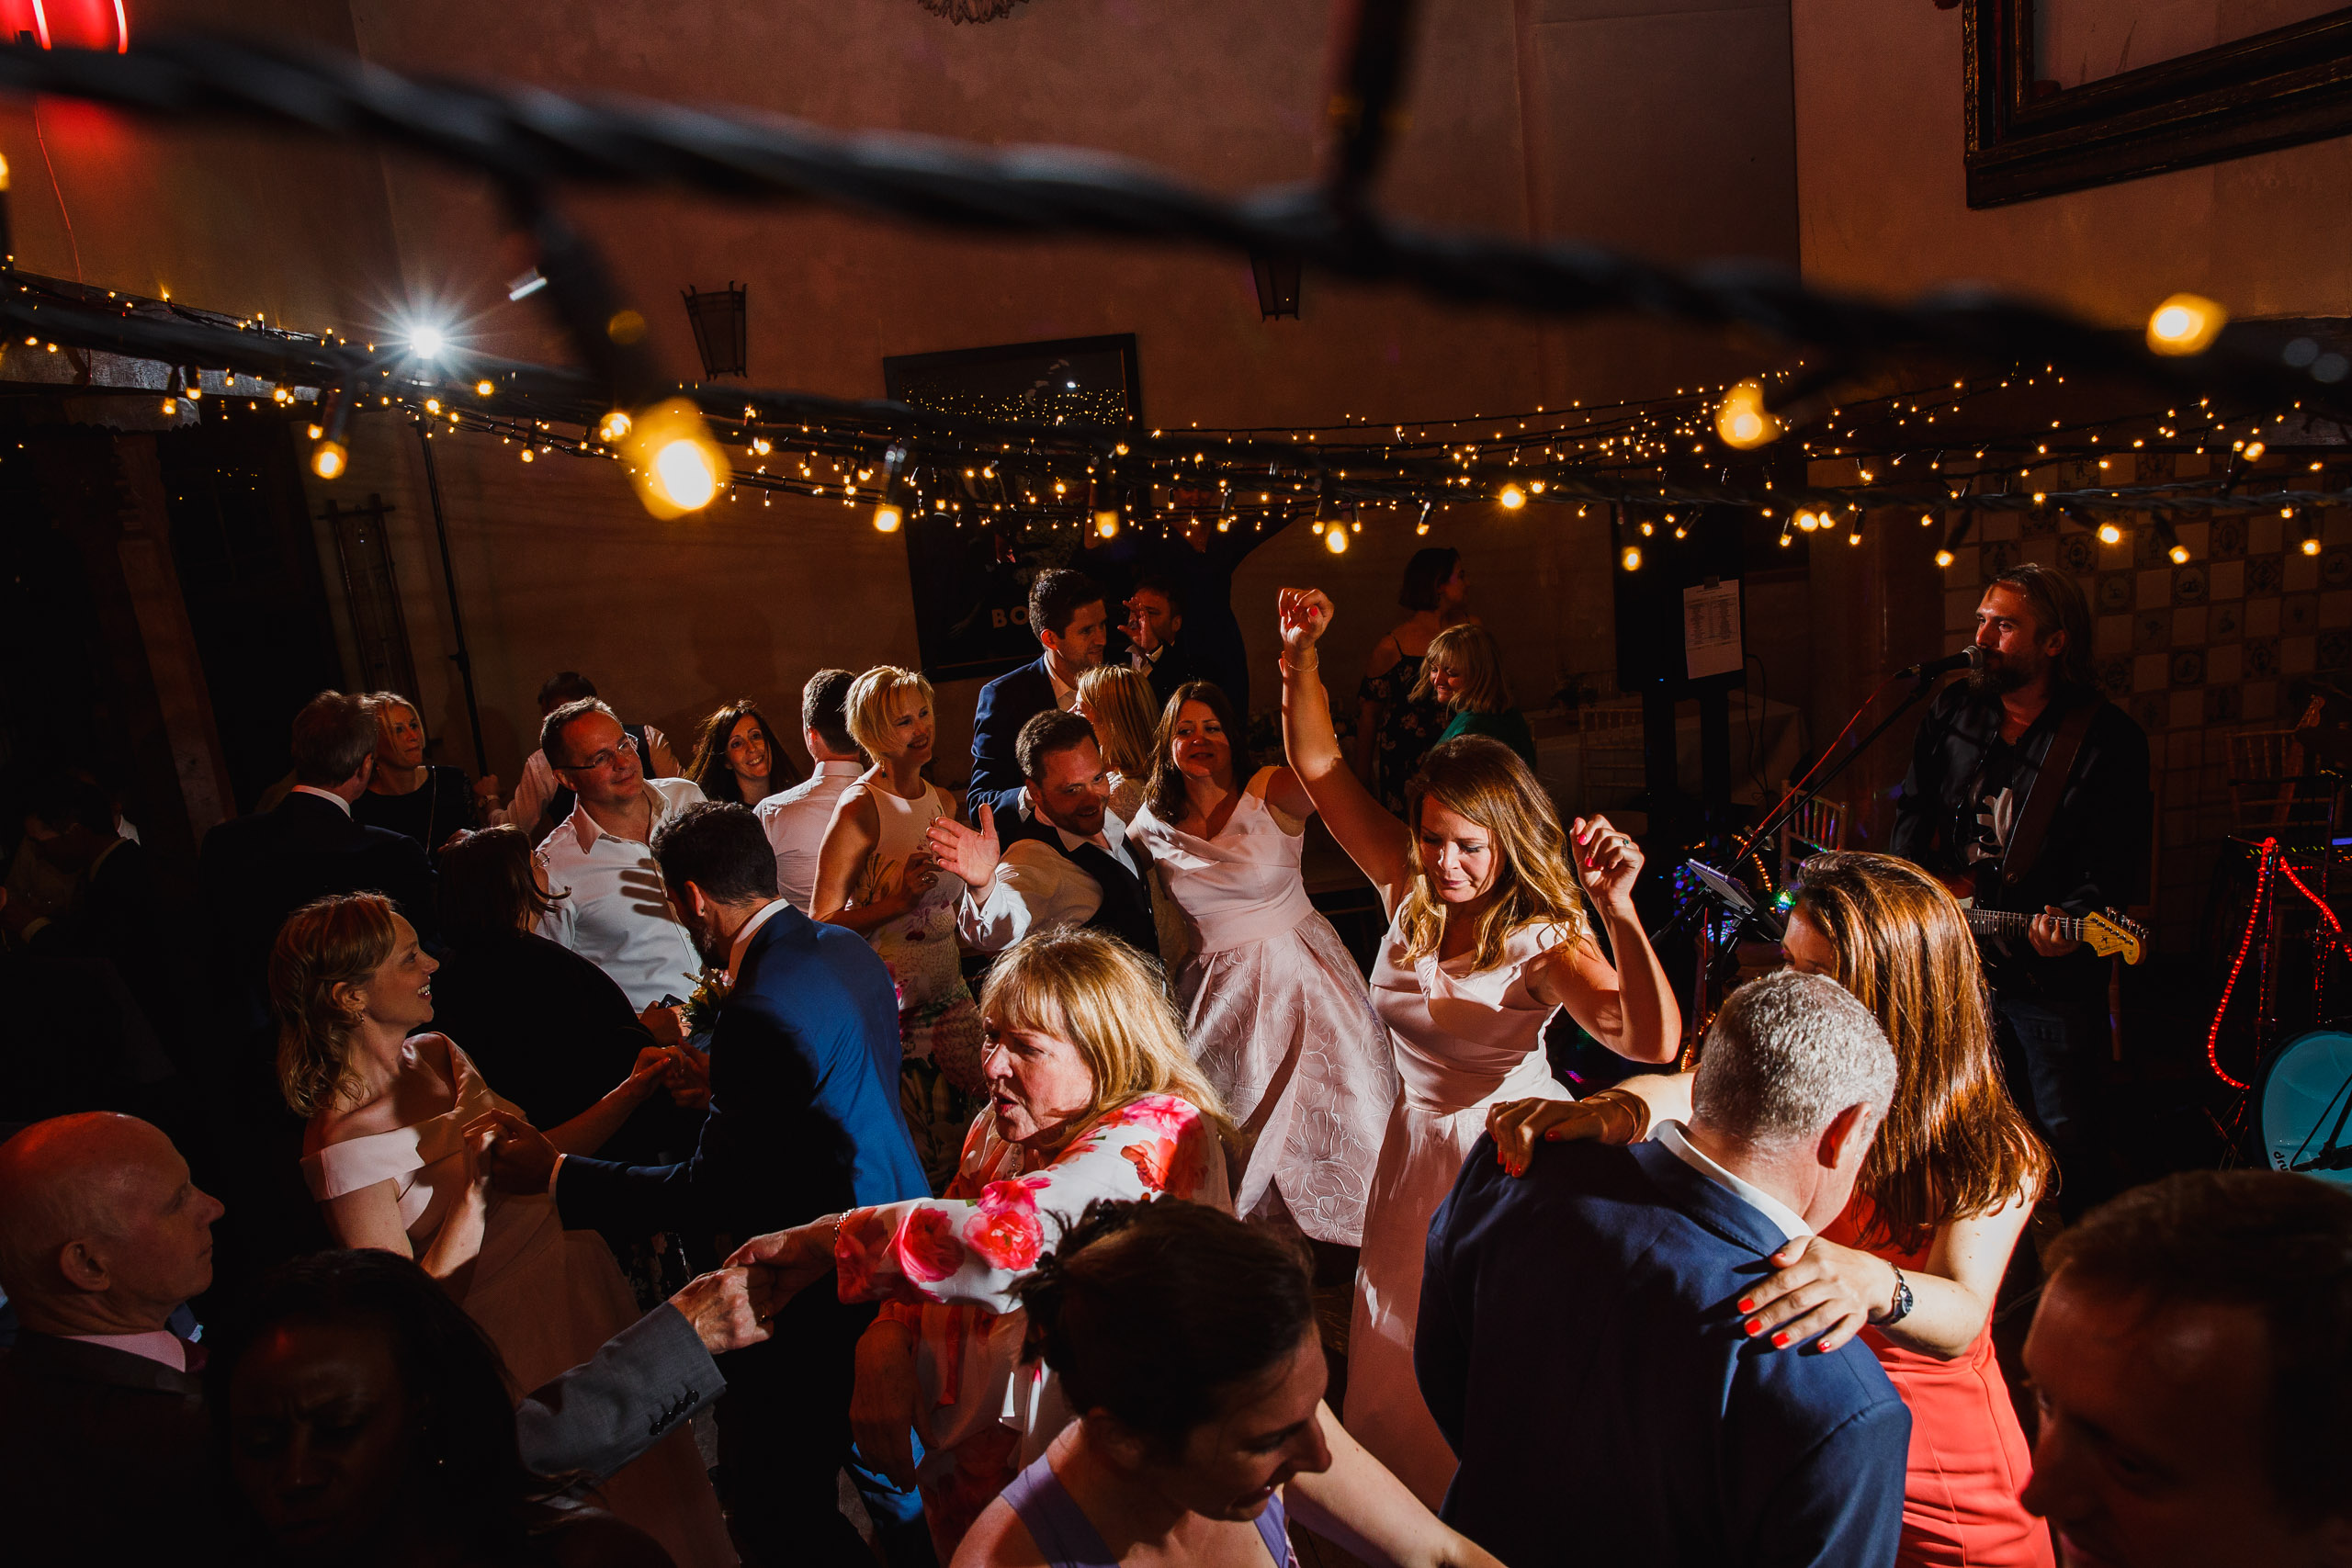 A crowded dance floor at about a voewood wedding